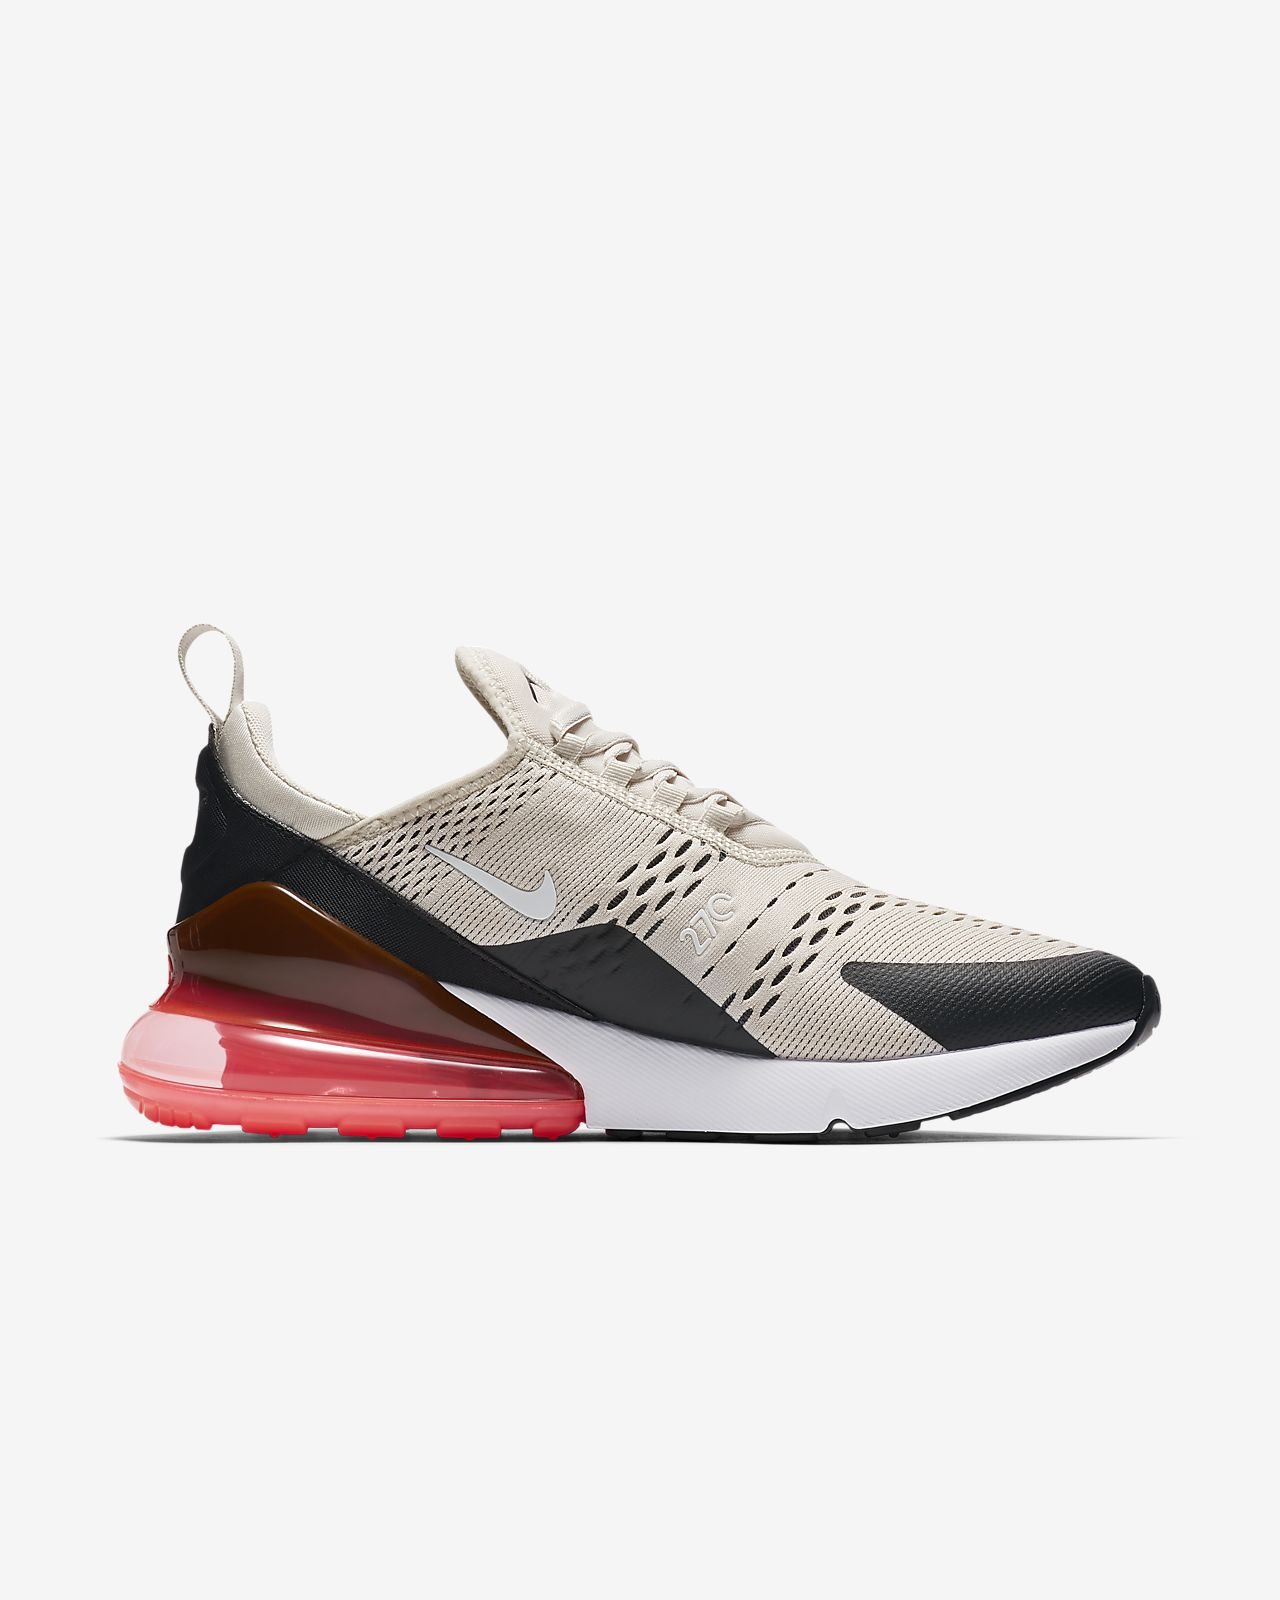 fea241856f28 Nike Air Max 270 Men's Shoe. Nike.com GB